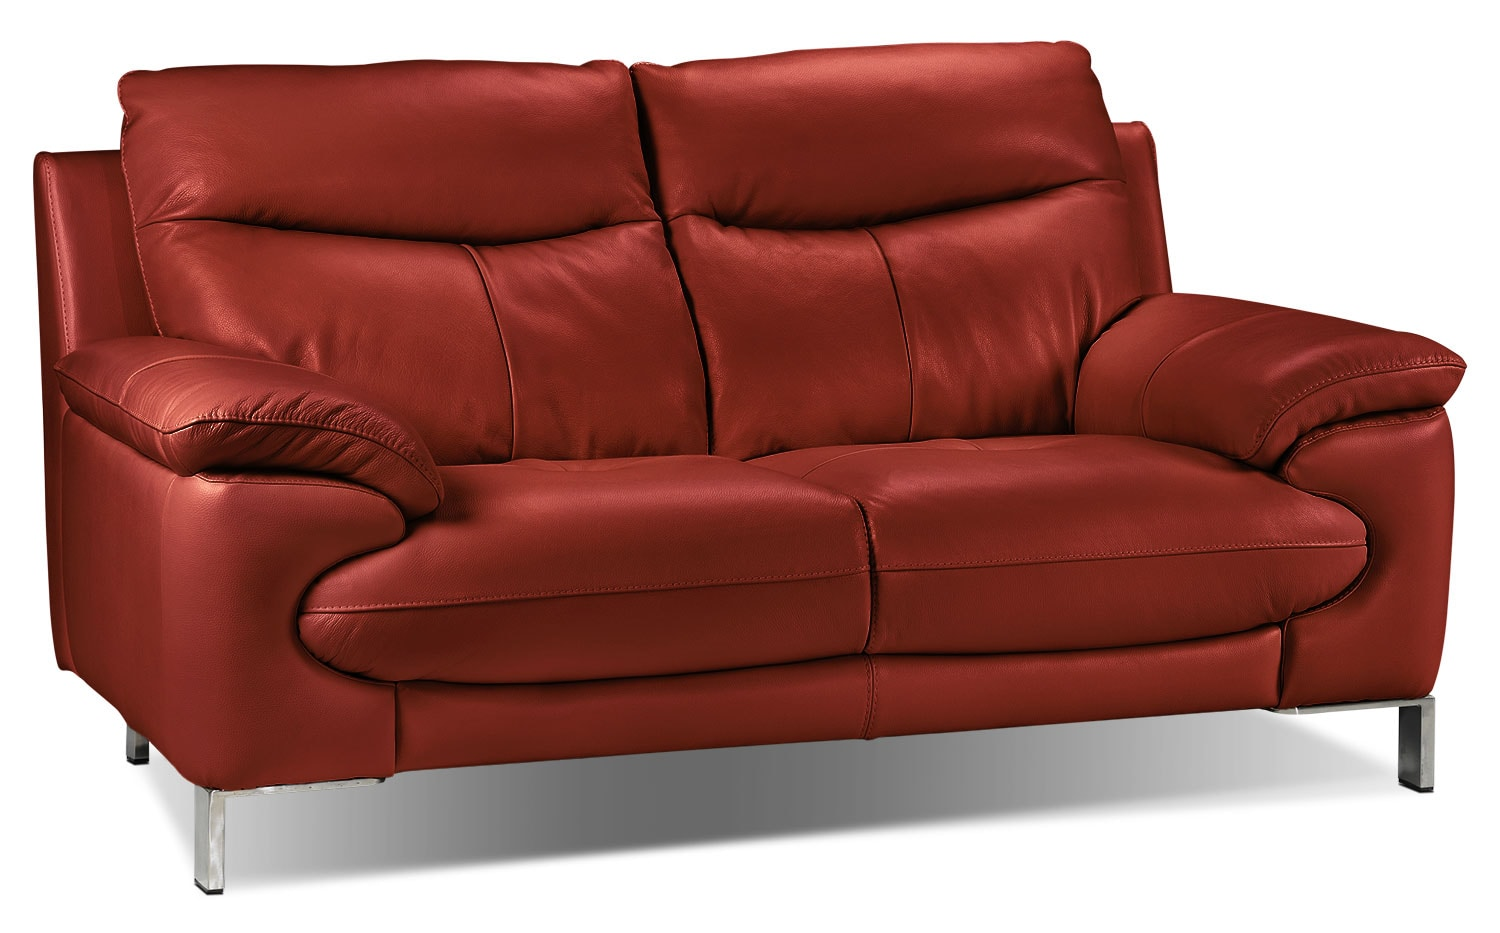 Anika Loveseat - Red